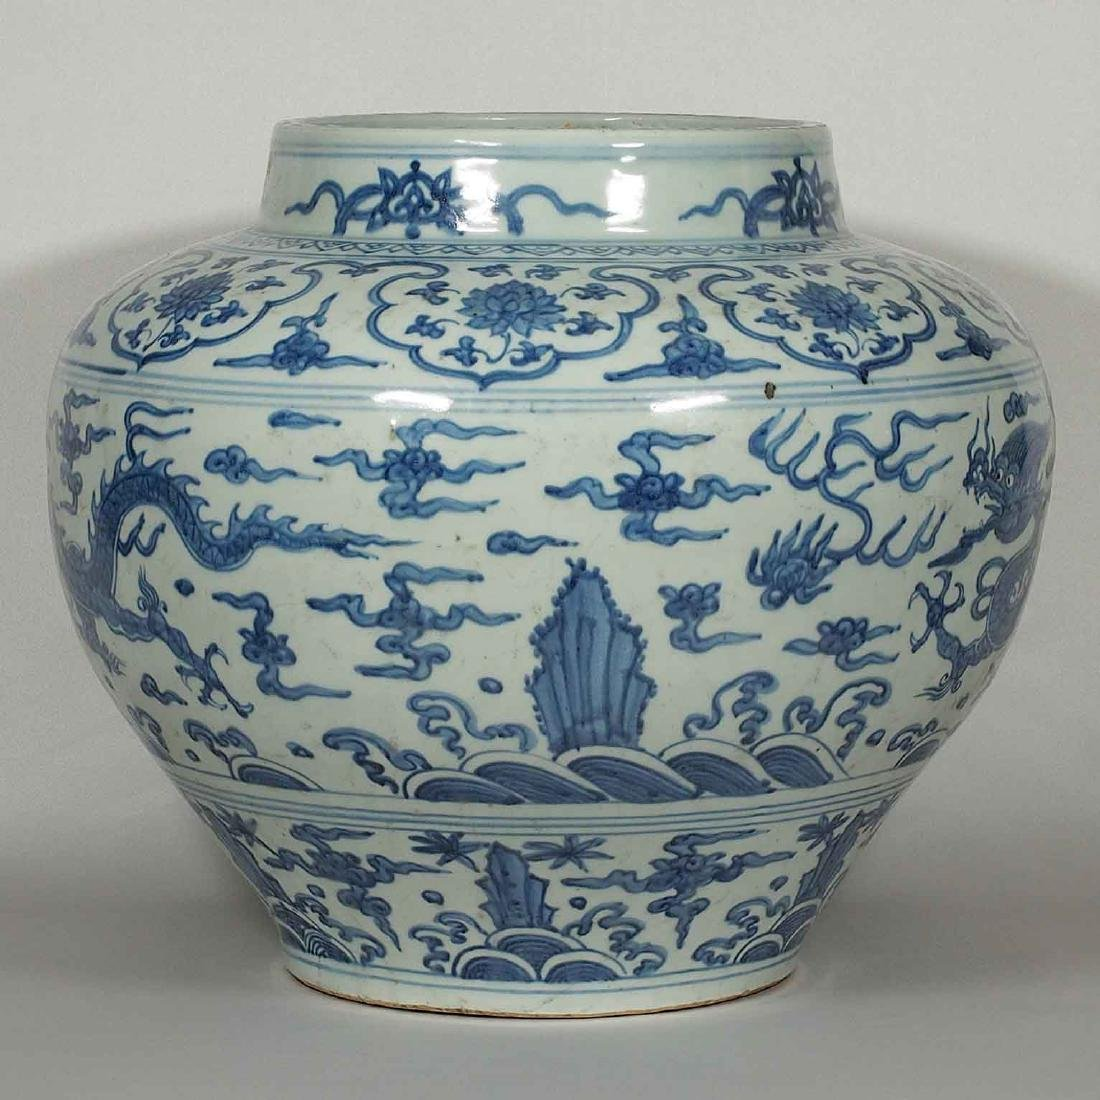 Massive Jar with Two Dragons Design, 15th Century Ming - 4